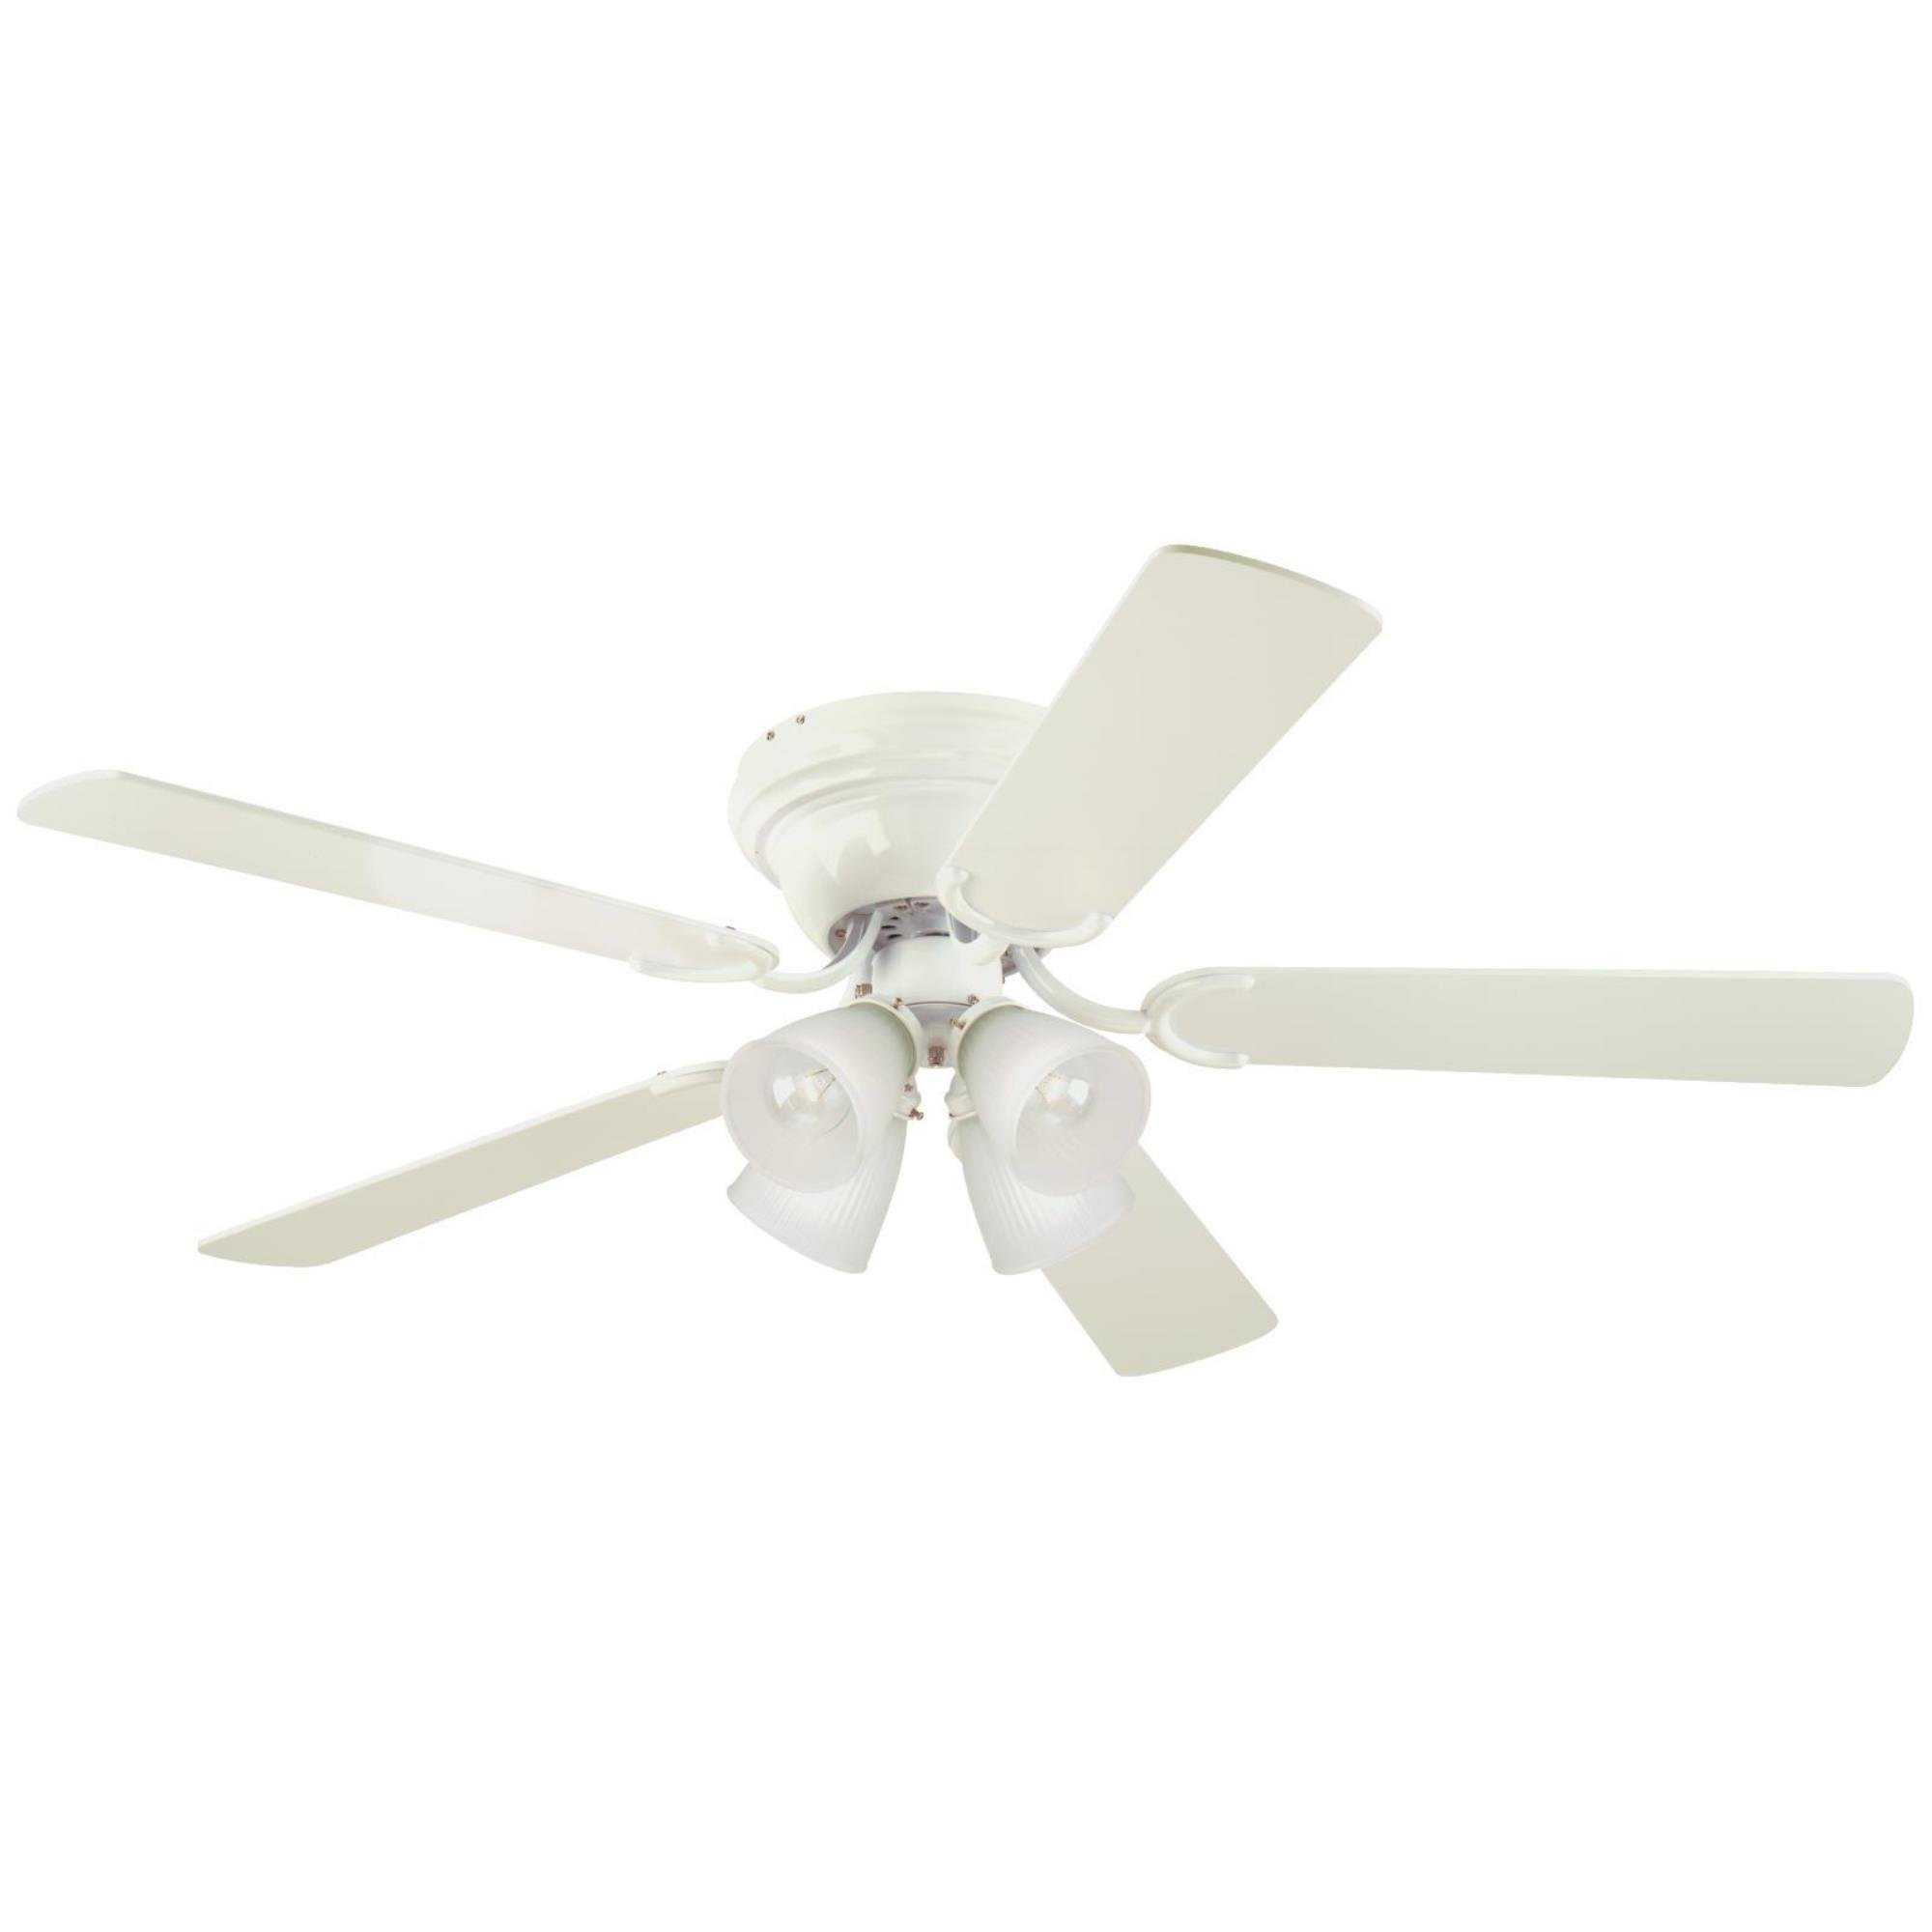 Westinghouse 7216400 Contempra IV Four-Light 52 inch Reversible Five-Blade Indoor Ceiling Fan, White with Frosted Ribbed-Glass Shades